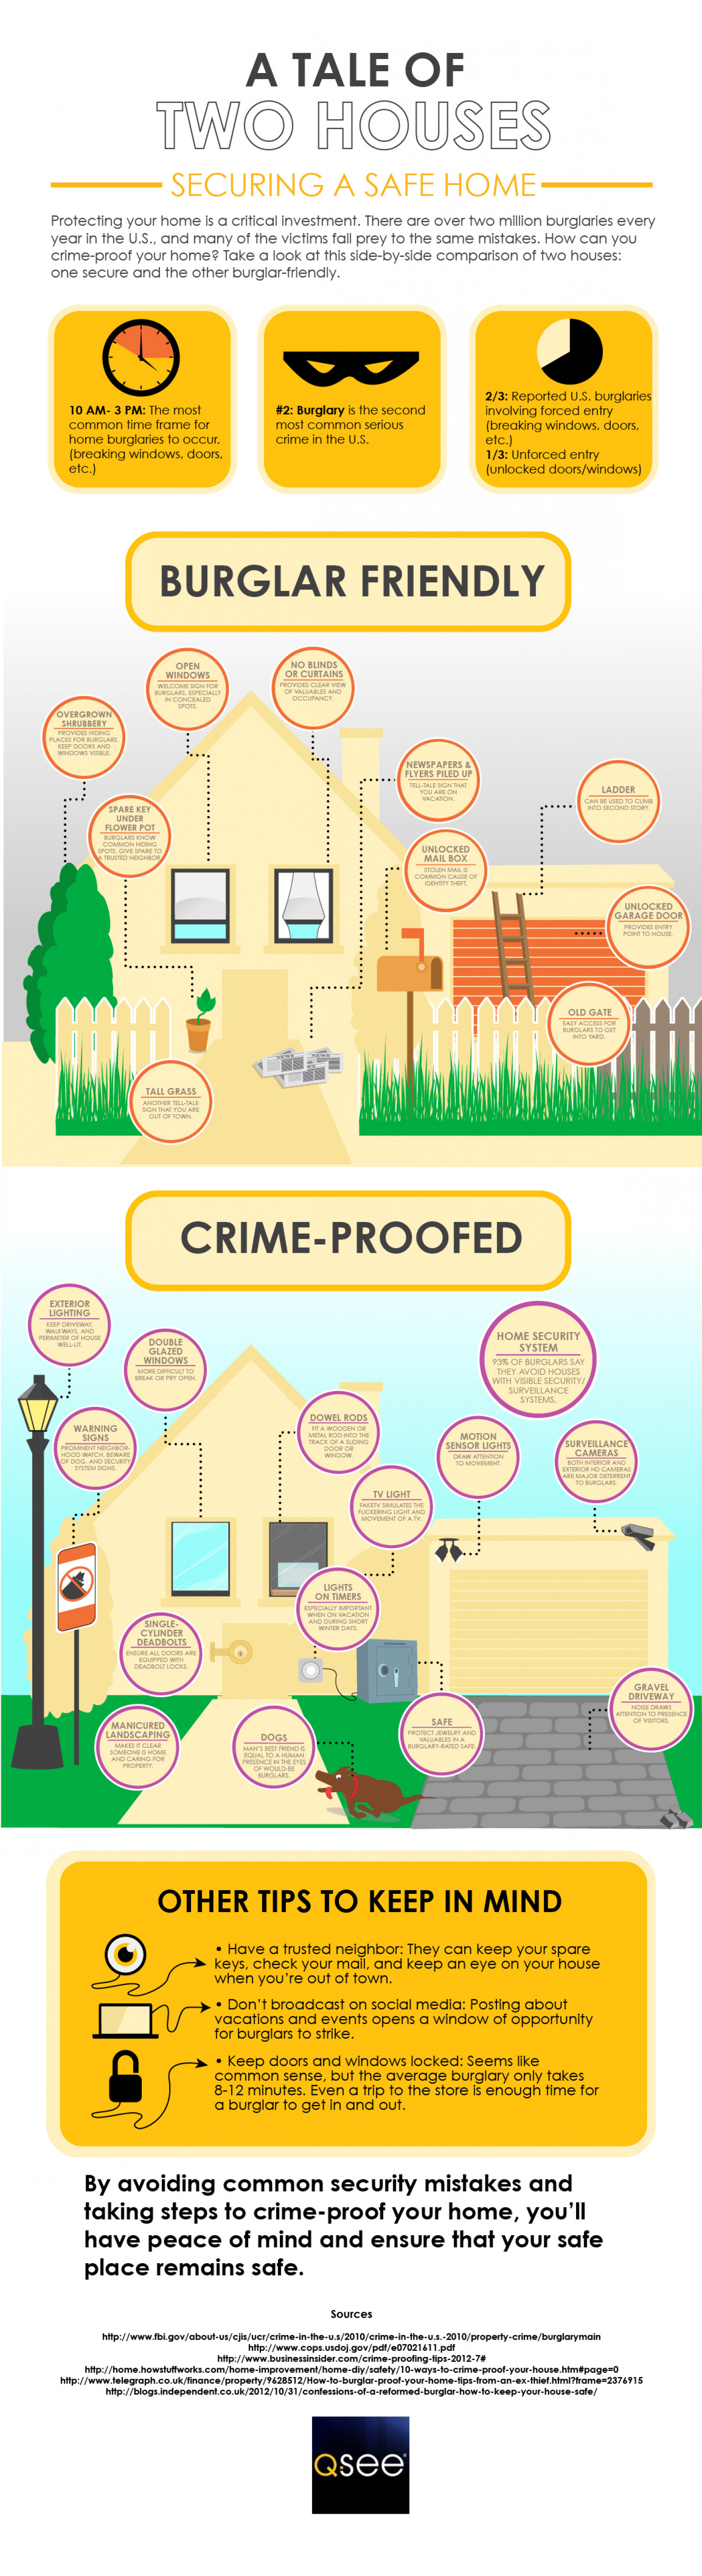 A Tale of Two Houses: Securing a Safe Home Infographic